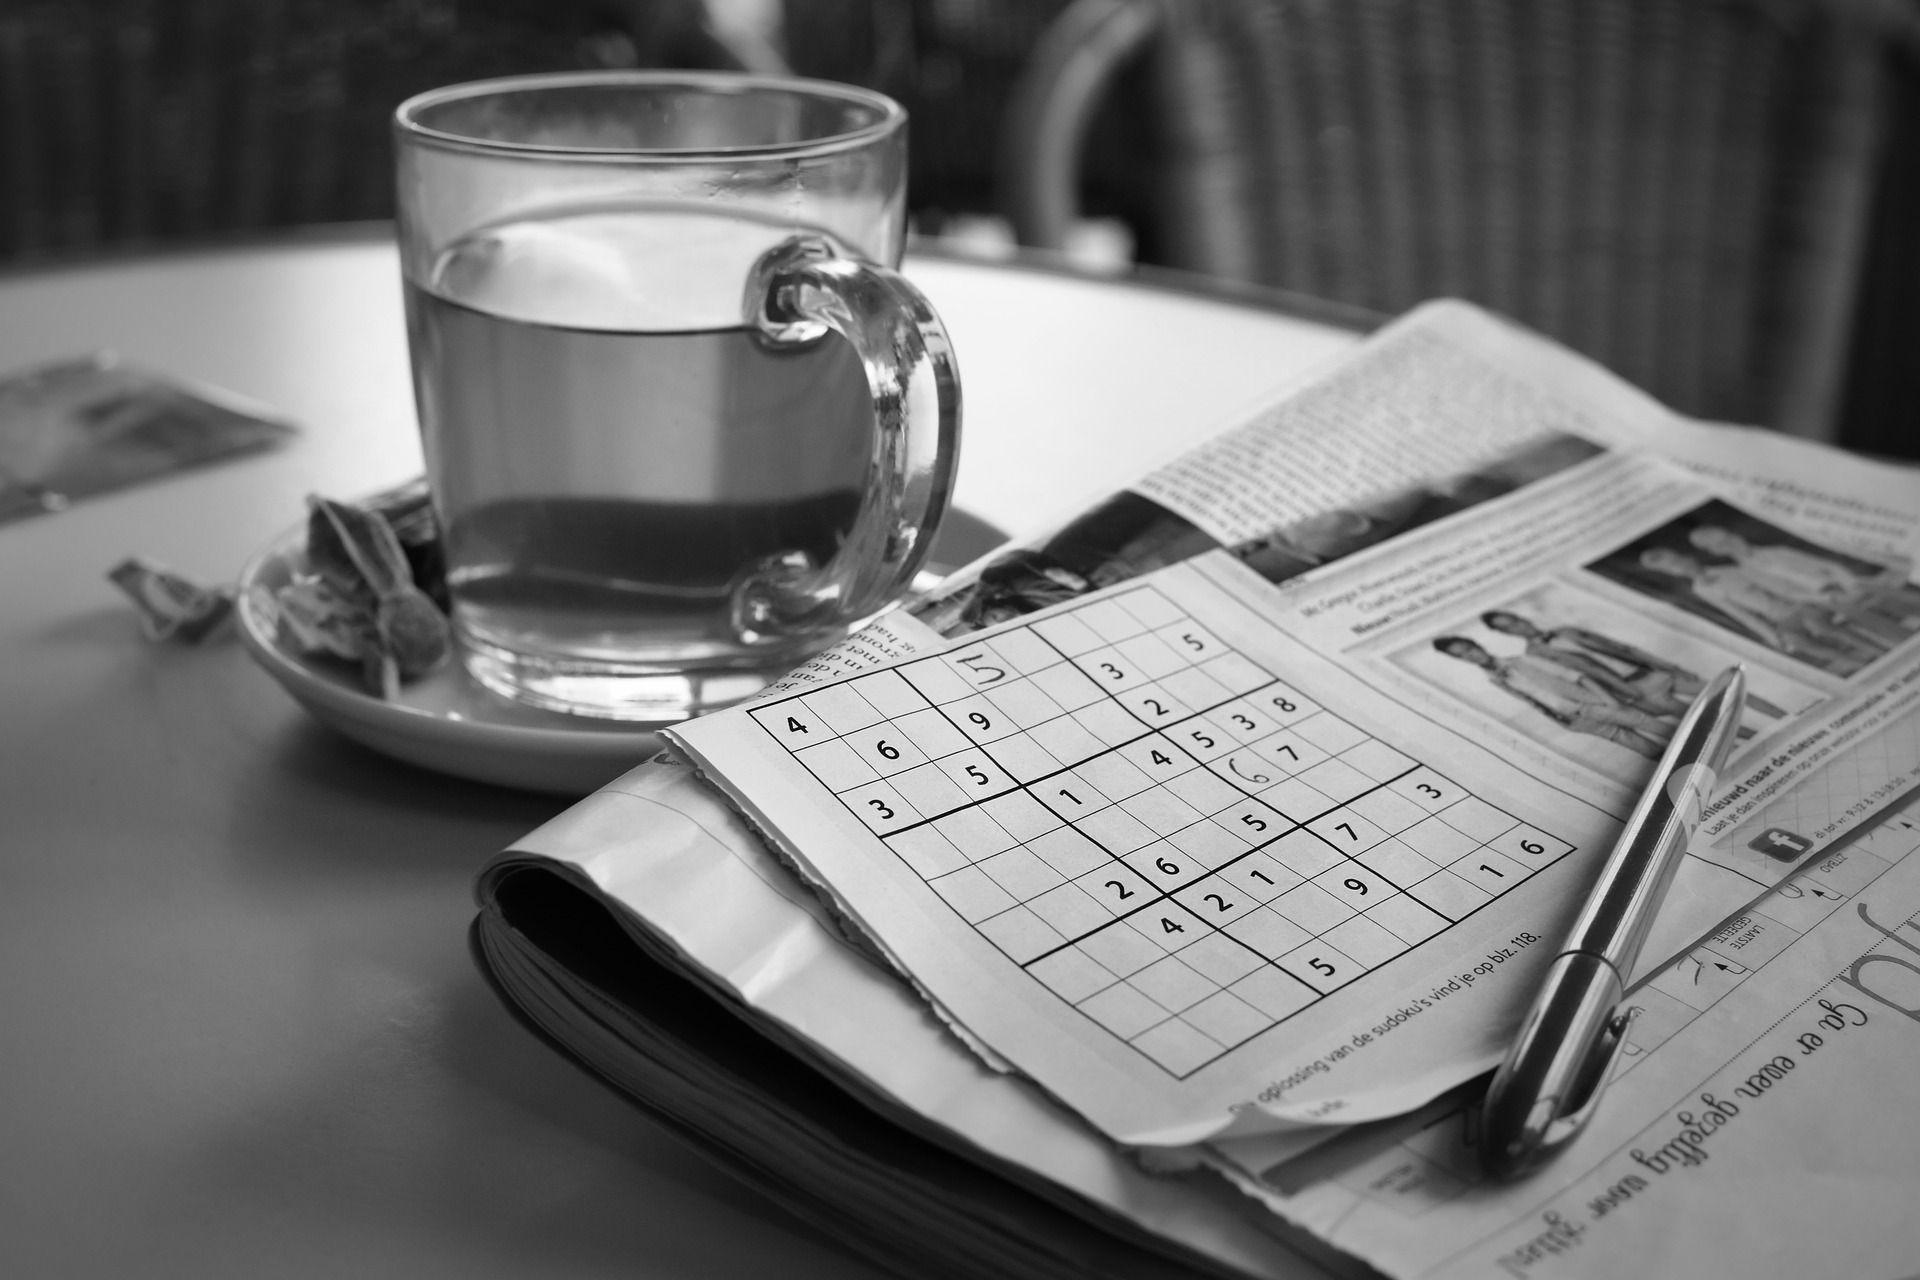 How to Play and Win Sudoku - Using Math and Machine Learning to Solve Every Sudoku Puzzle